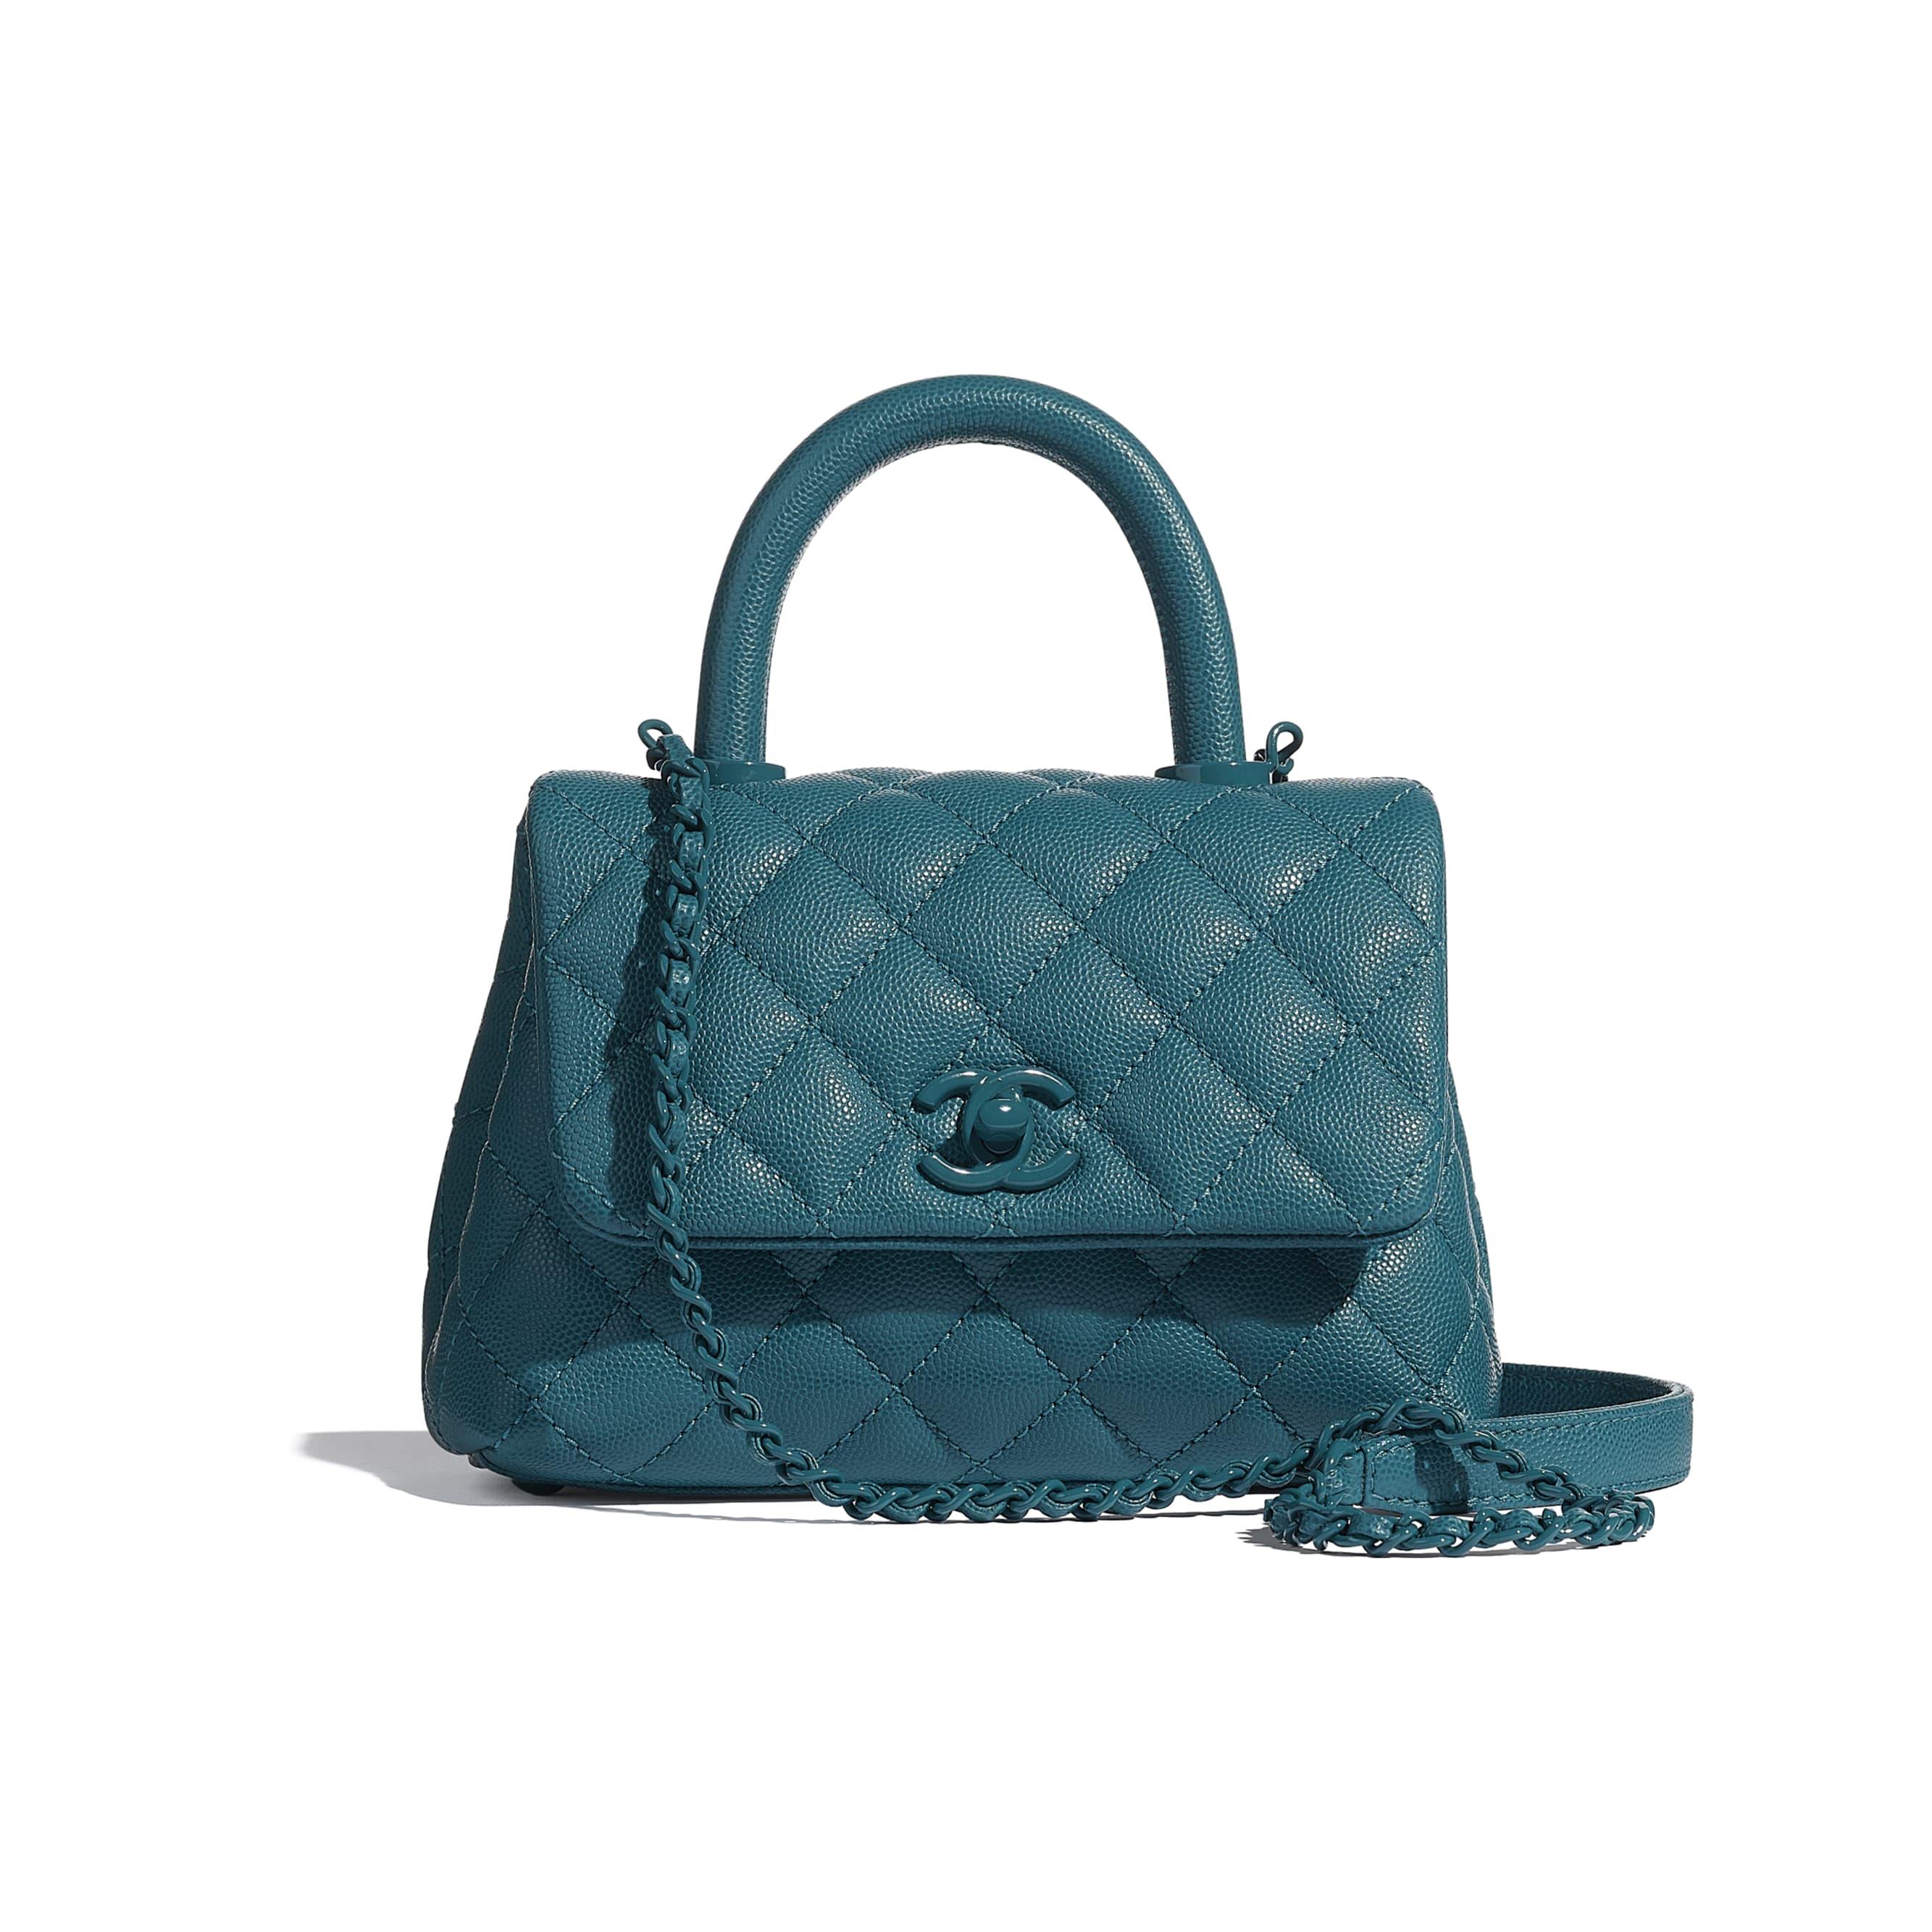 Mini Flap Bag with Top Handle - Turquoise - Grained Calfskin & Lacquered Metal - CHANEL - Vista predefinida - ver a versão em tamanho standard